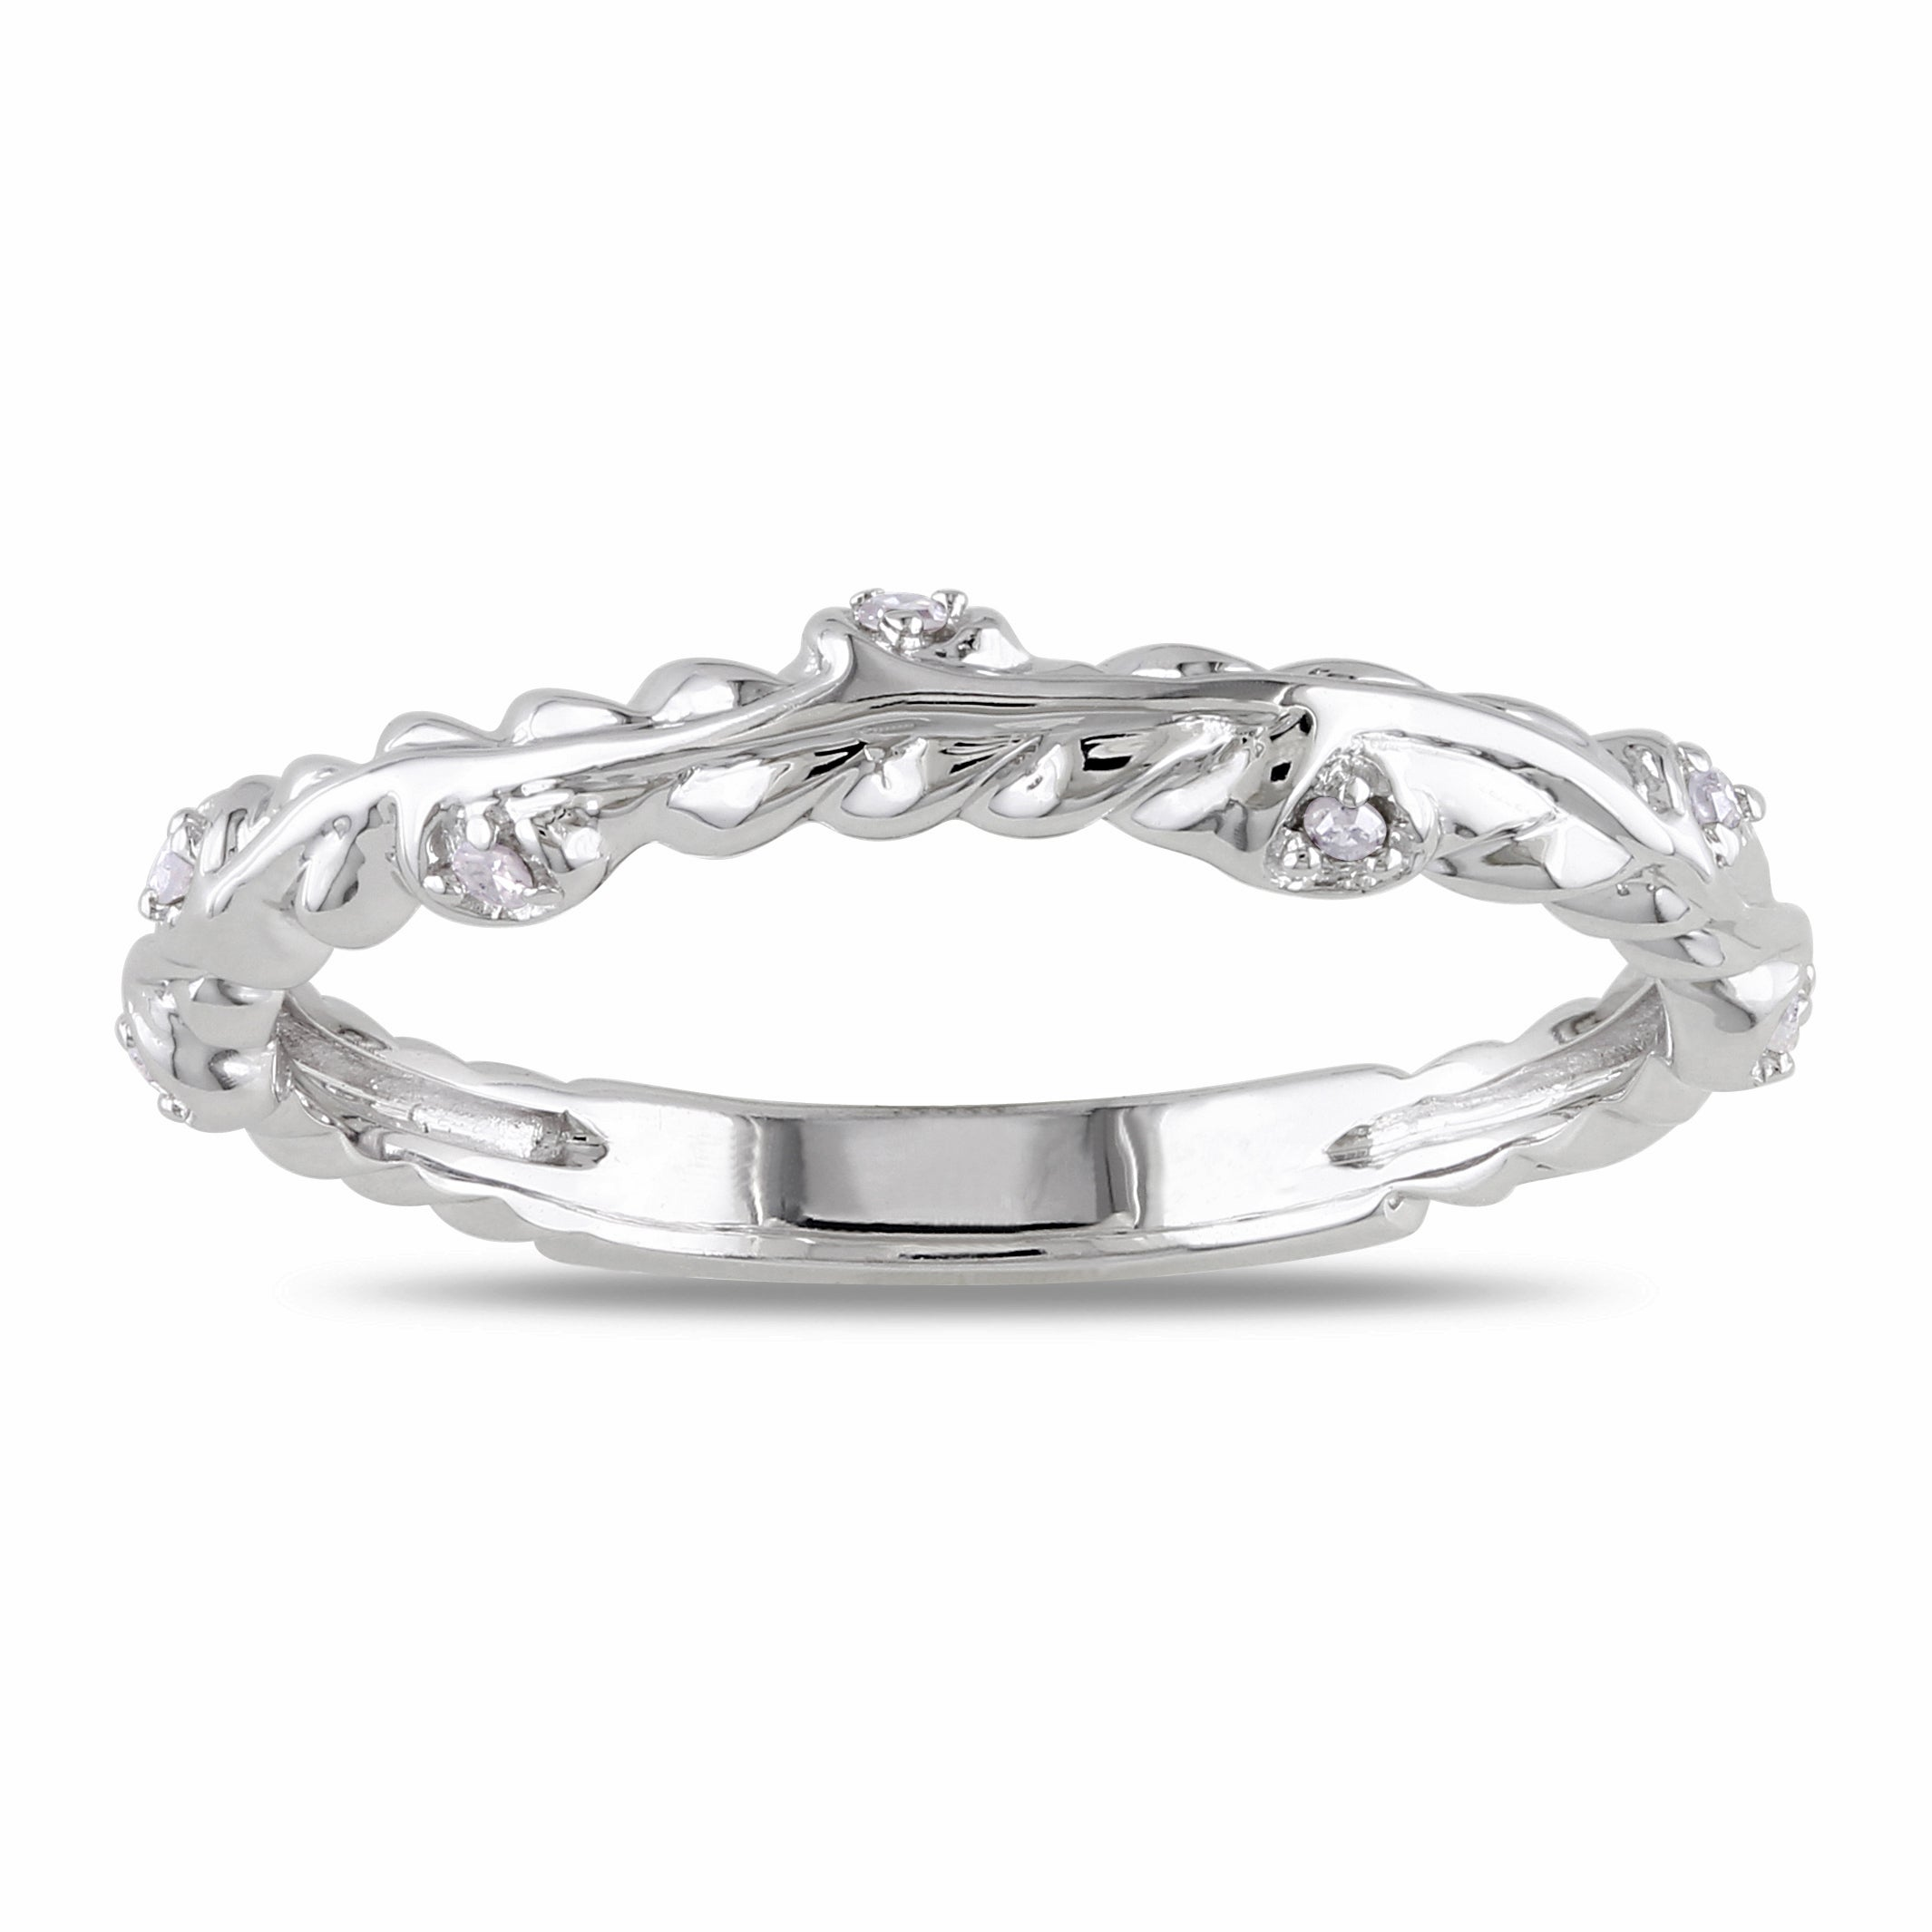 Miadora 14k White Gold Diamond Accent Wedding Band at Sears.com